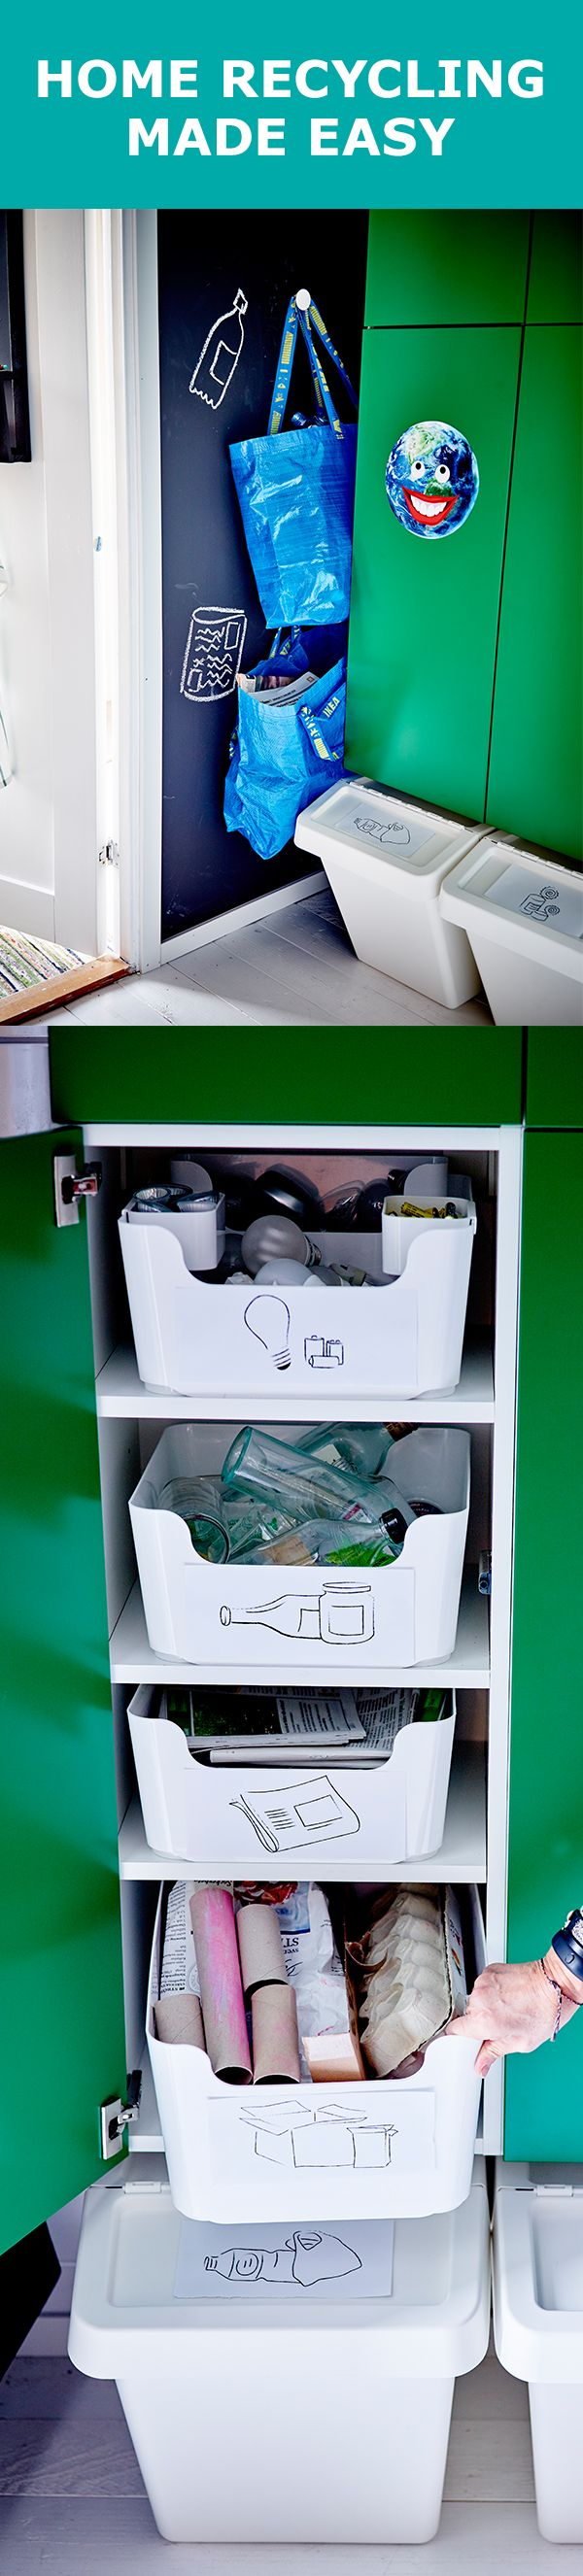 When it comes to recycling, we say: the simpler, the better. Creating an easy-to-use system at home will inspire the whole family to get involved. PLUGGIS recycling bins are great for stacking and keeping all your recyclables separate. And for easy transport of your bottles and newspaper, try using IKEA's reusable FRAKTA bags.